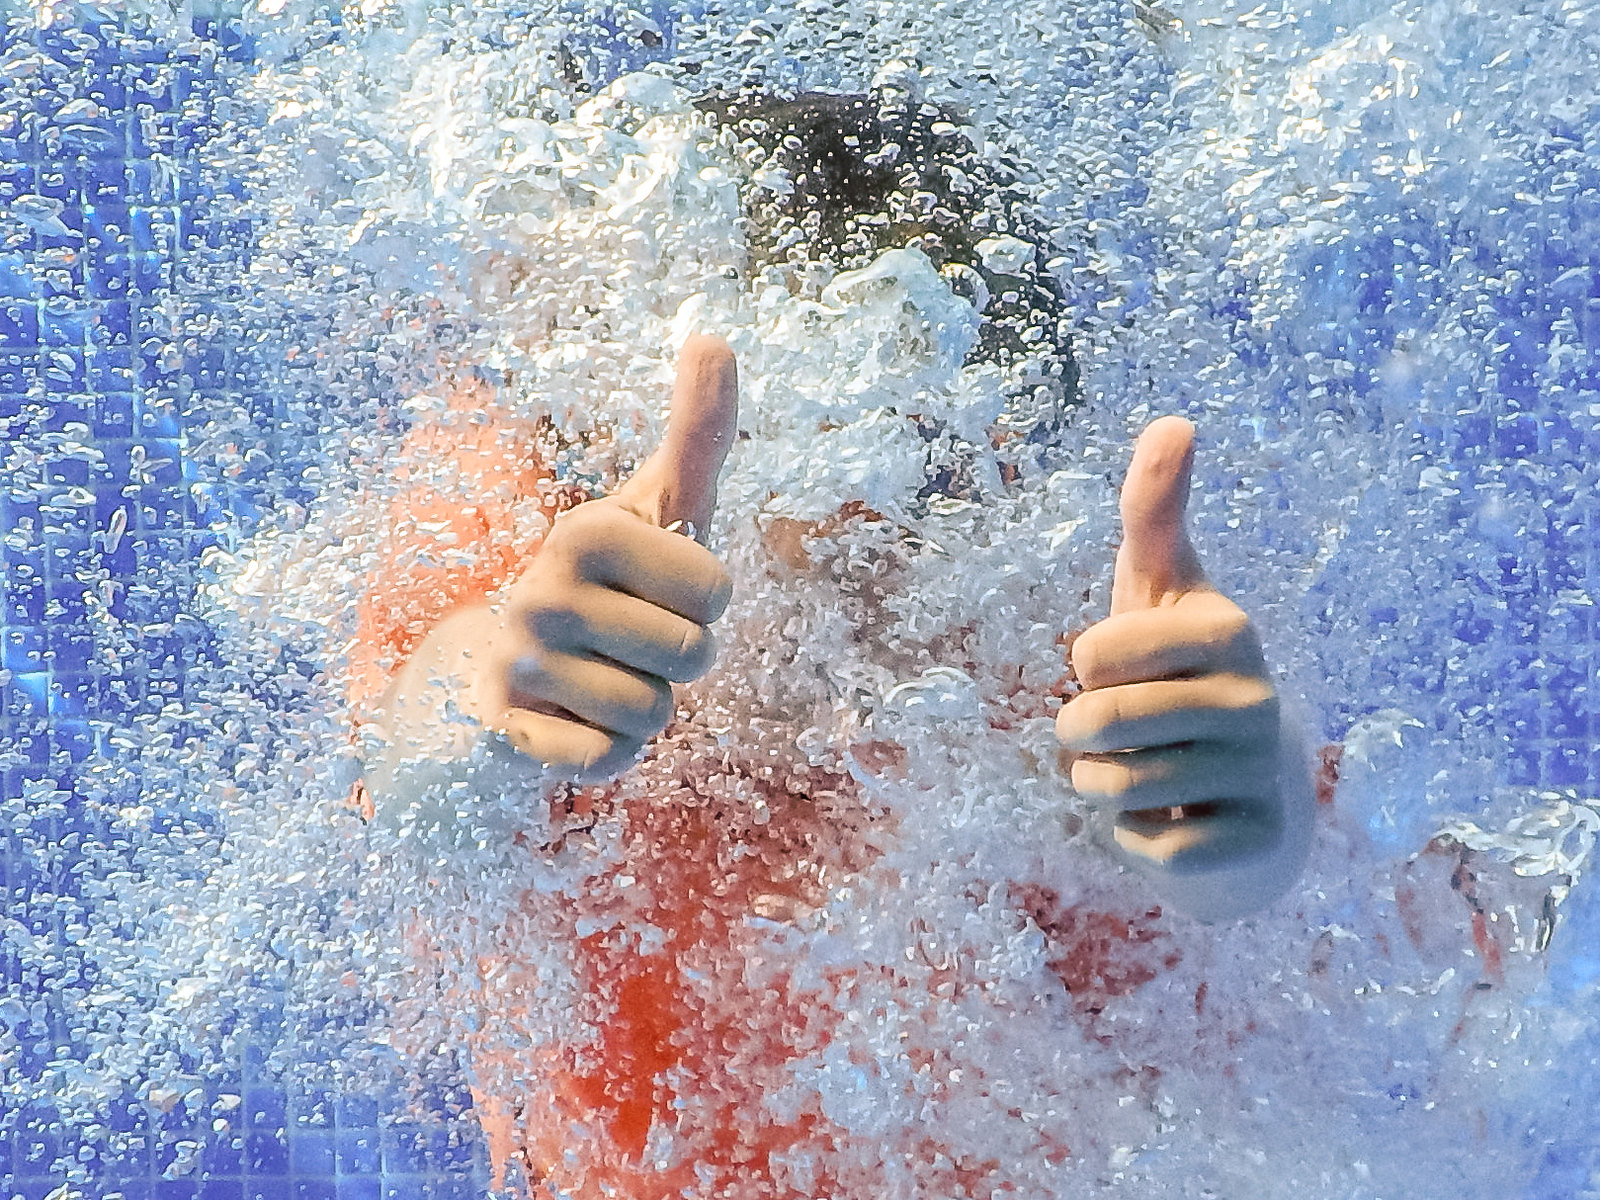 Thumbs up by Kevin Gale